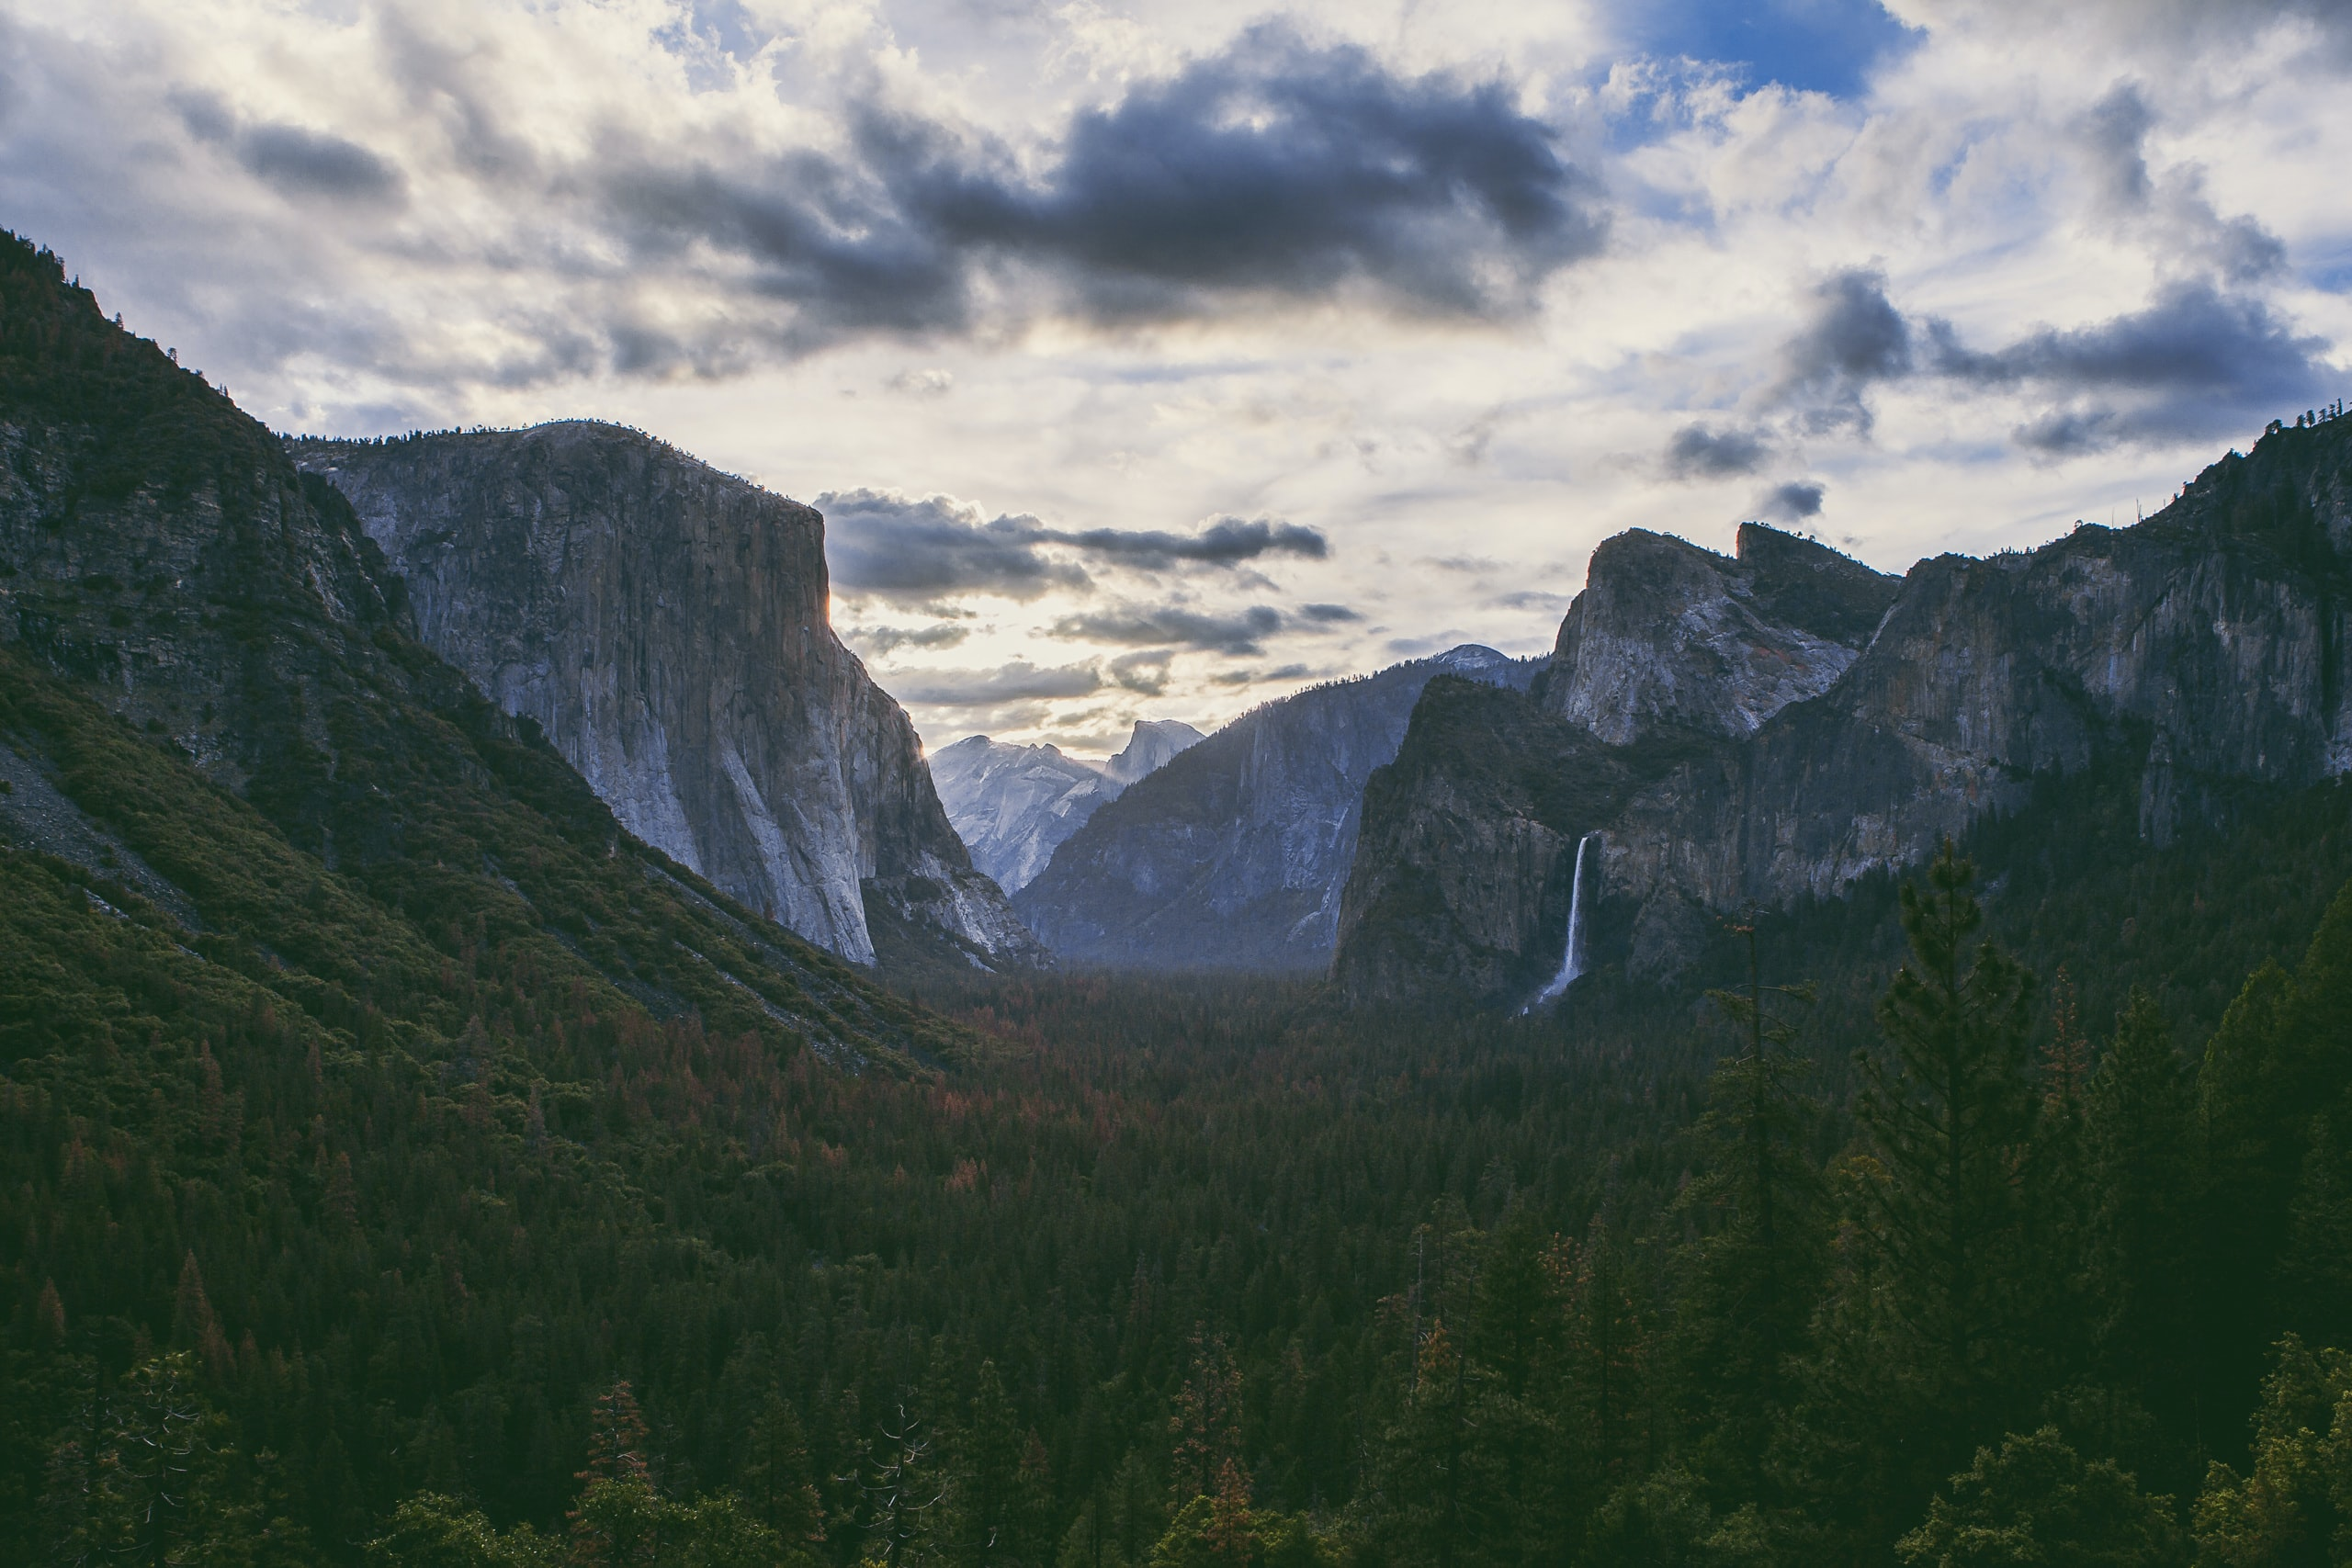 A picturesque view of the granite summits and waterfalls in Yosemite Valley